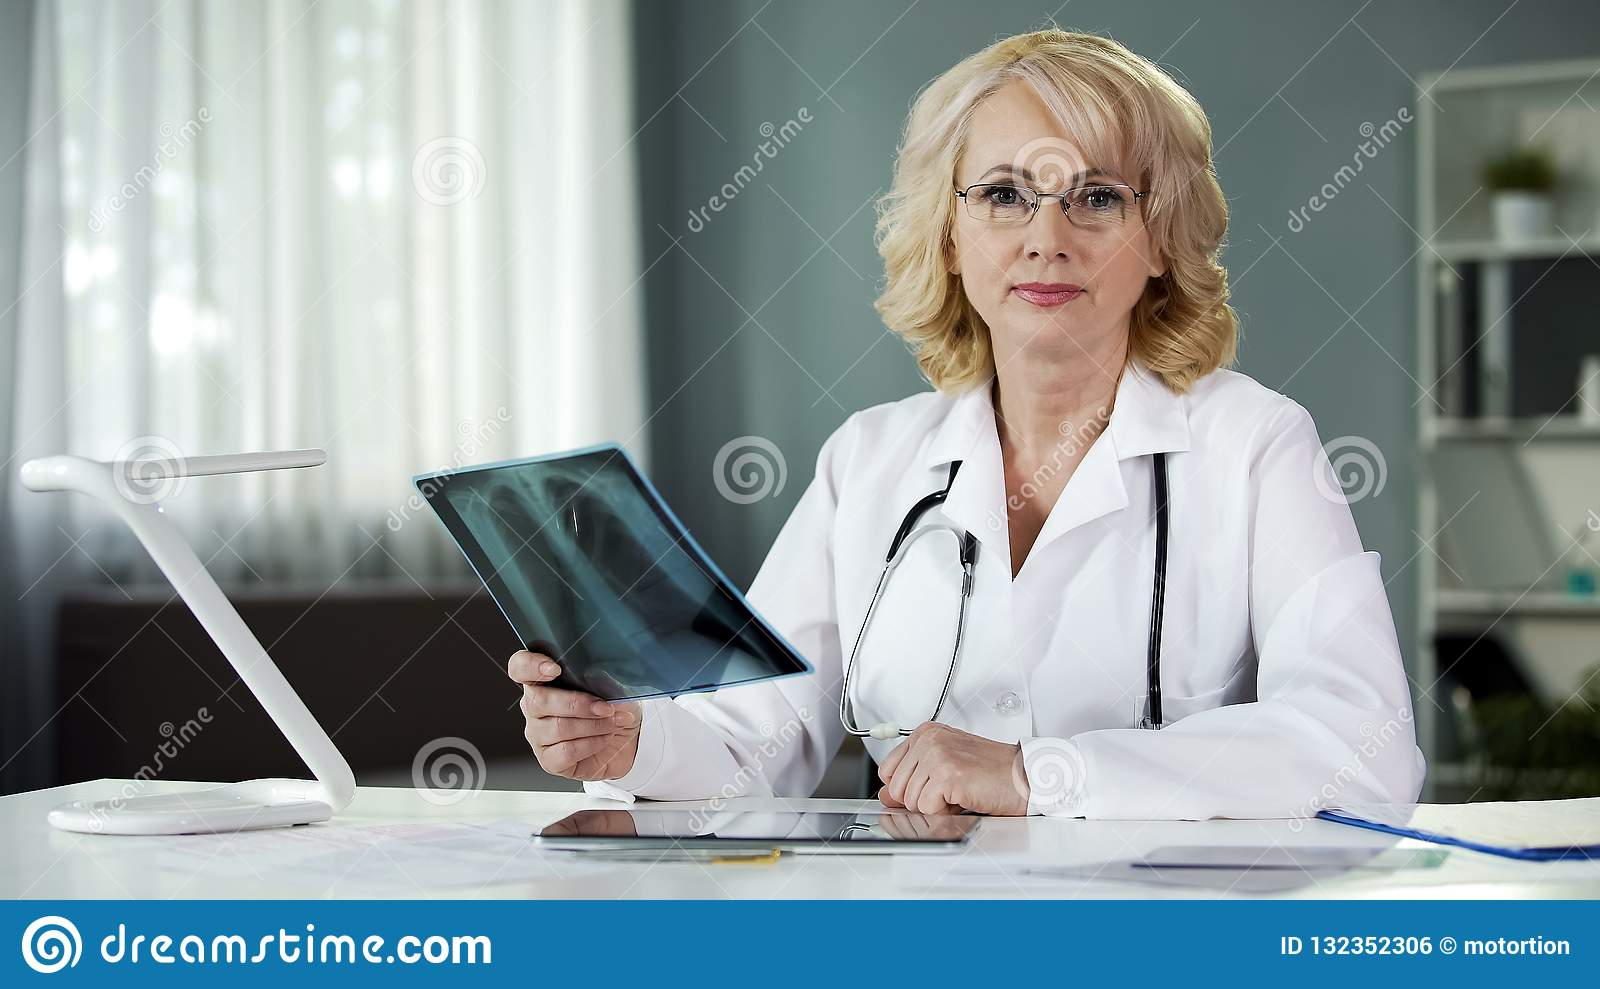 Worried about patient s health doctor seriously looking into camera, medicine